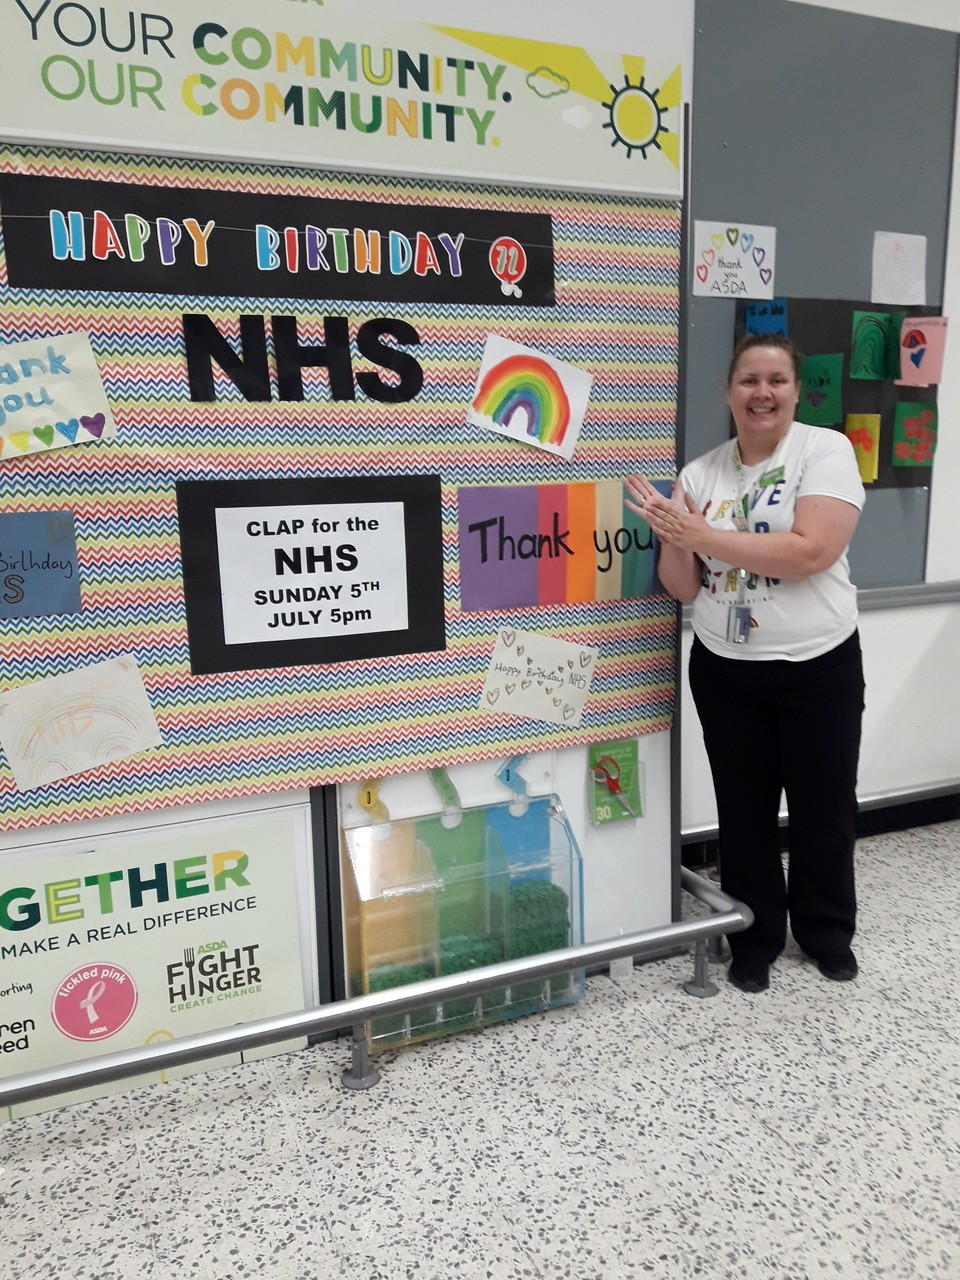 Happy 72th Birthday NHS | Asda Bromborough